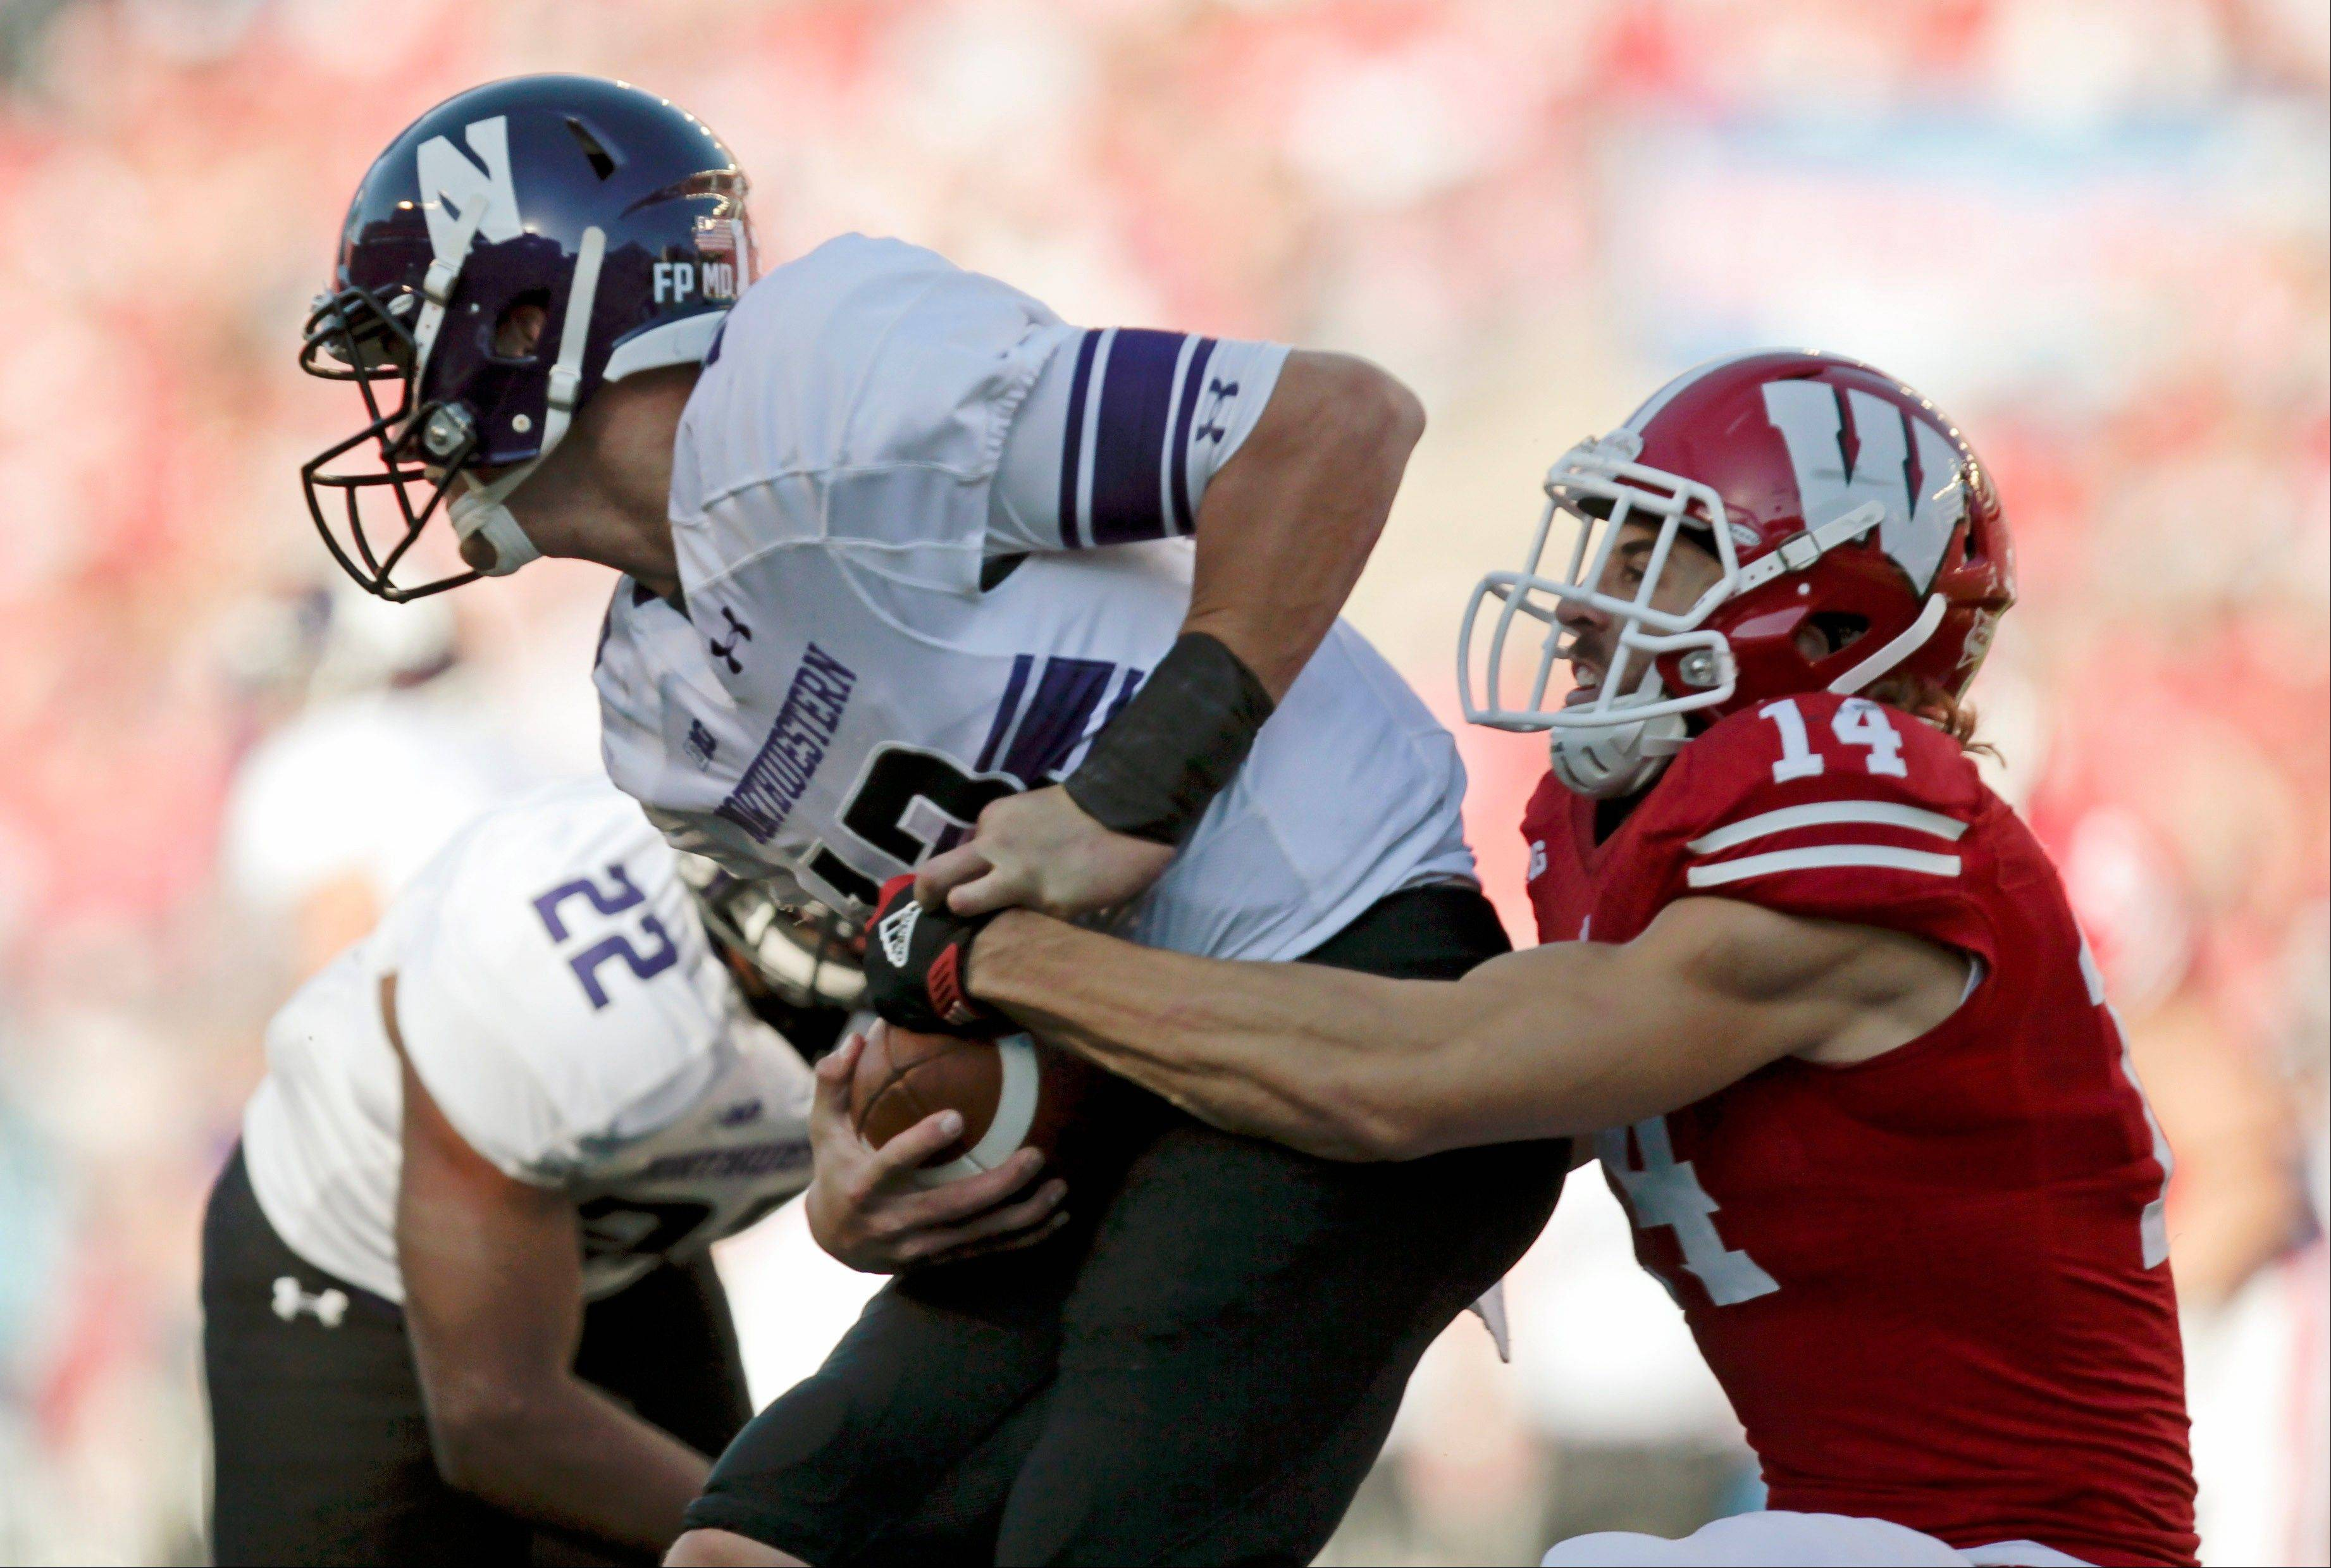 Northwestern falls out of AP Top 25